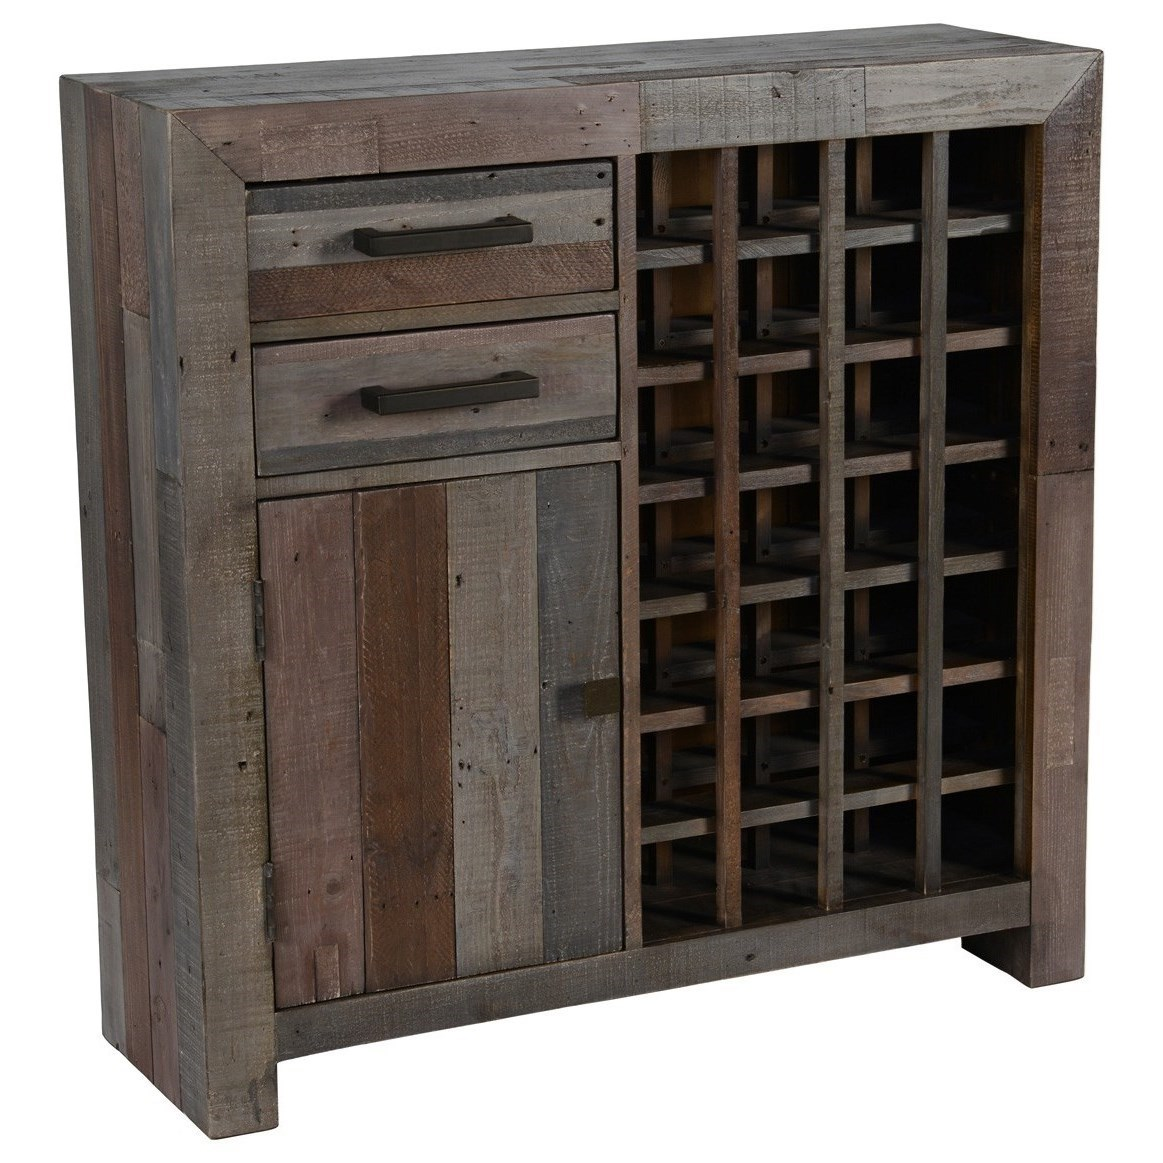 classic home furniture reclaimed wood. classic home omni storm transitional reclaimed pine wood wine cabinet with storage john v schultz furniture rackswine cabinets